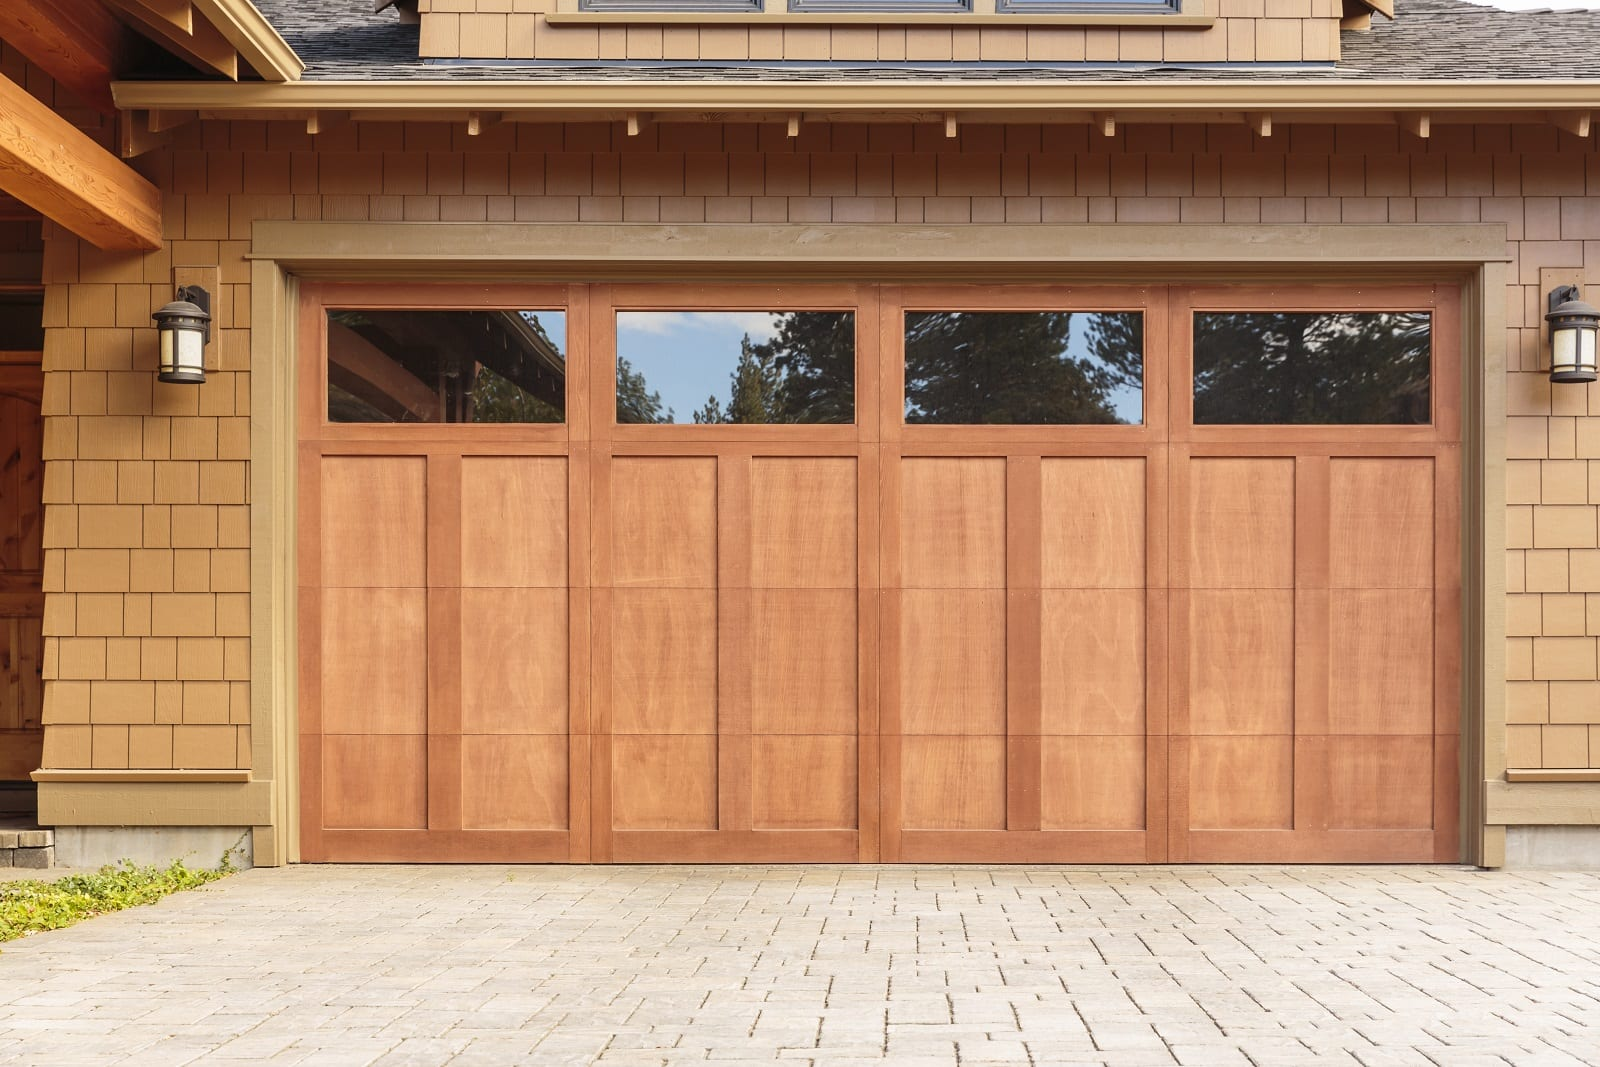 New Garage Door Panels